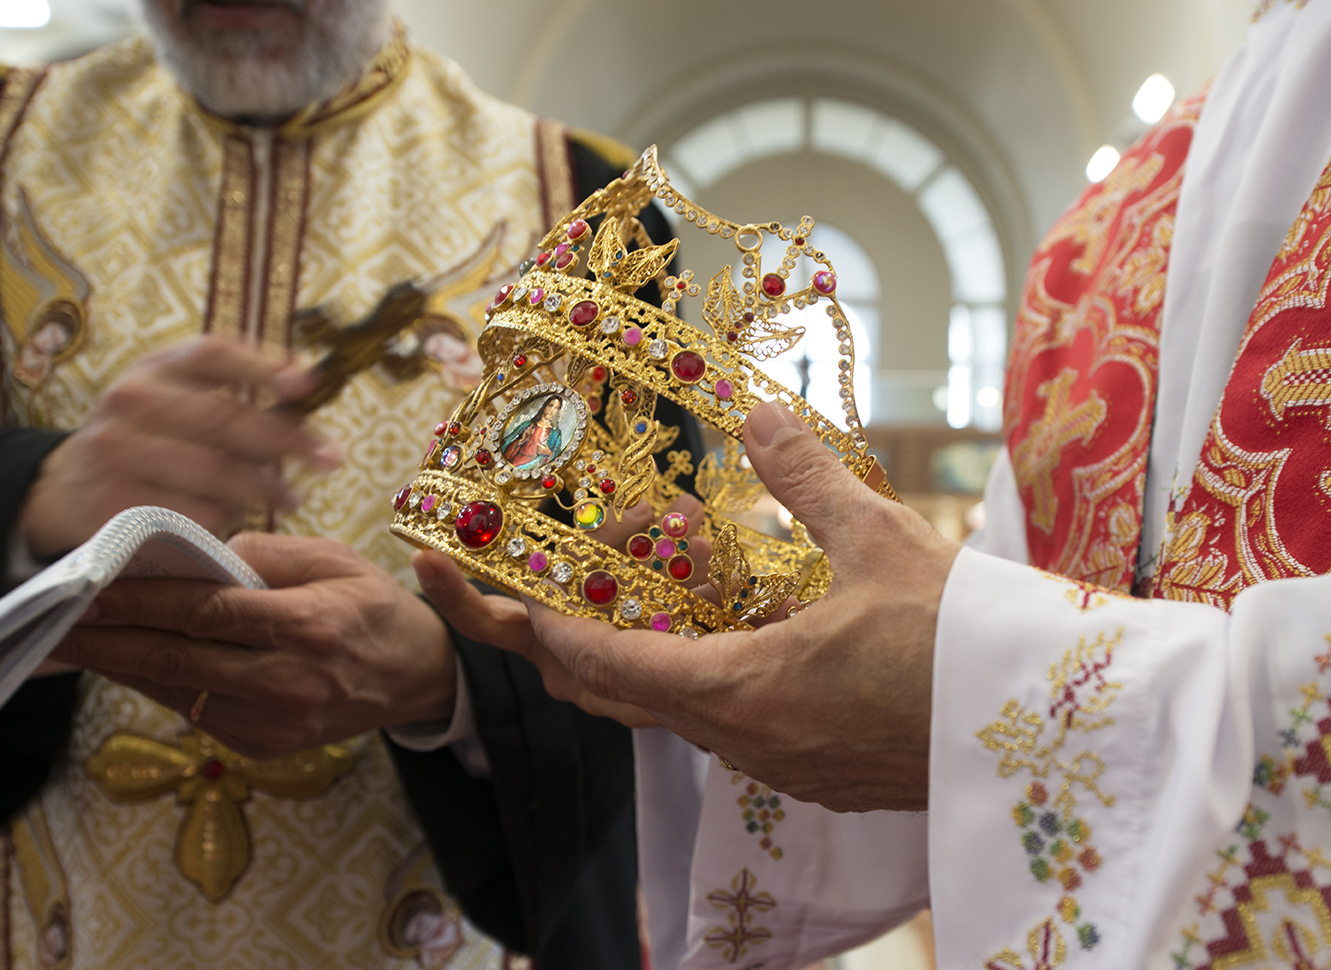 Coptic wedding crowns